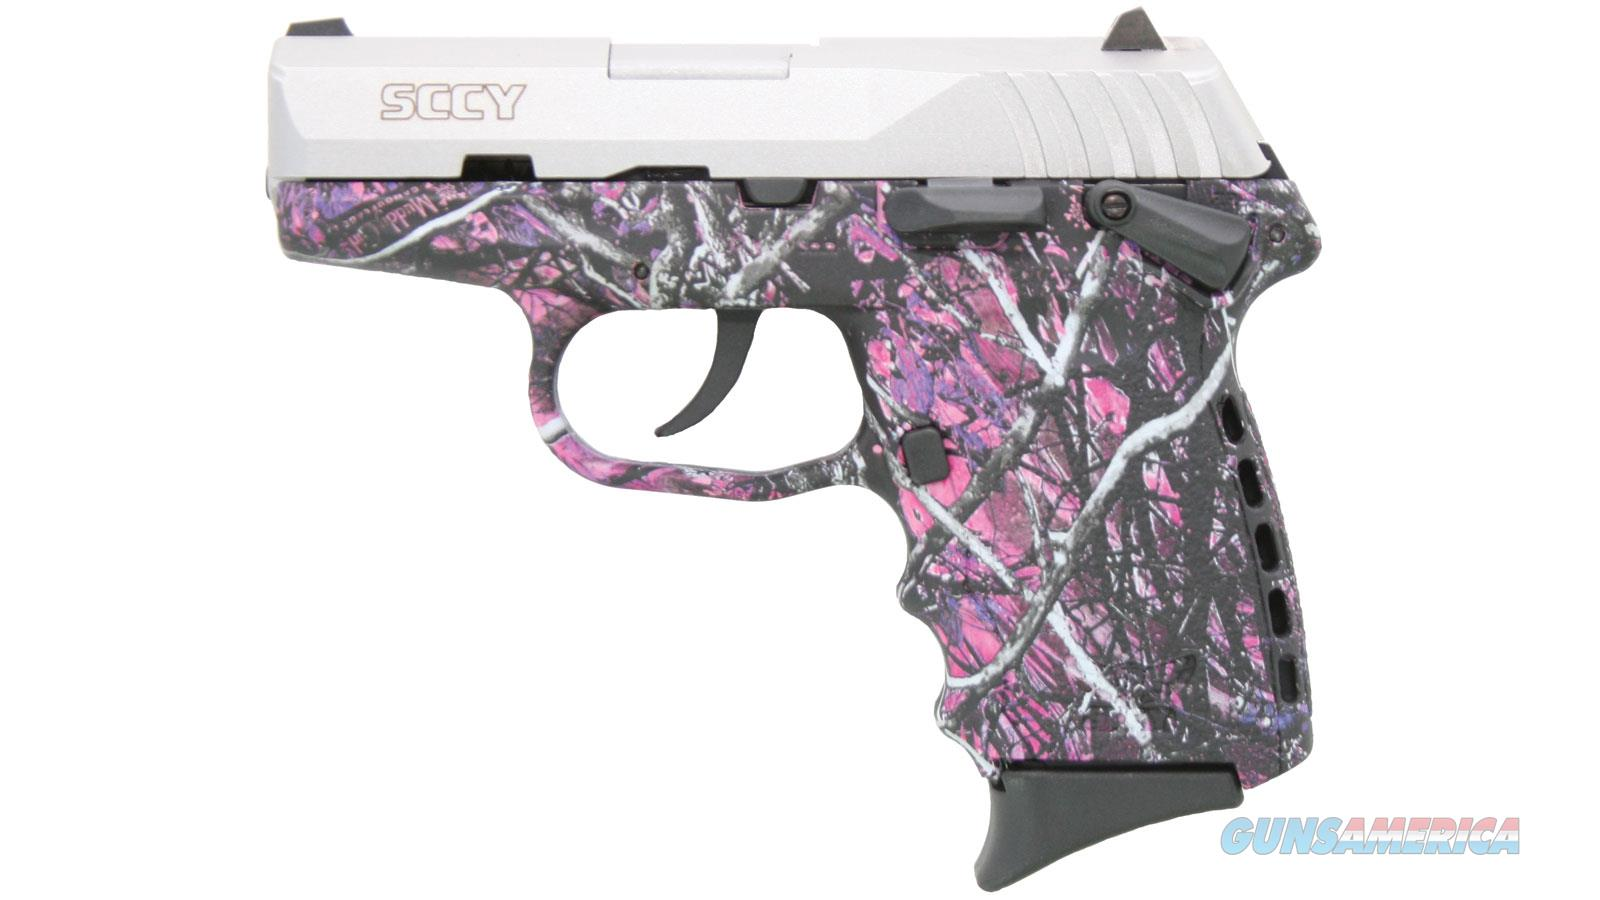 Sccy Industries Cpx1-Tt Pistol Dao 9Mm 10Rd Ss/Muddy Girl Safety CPX1-TTMG  Guns > Pistols > S Misc Pistols